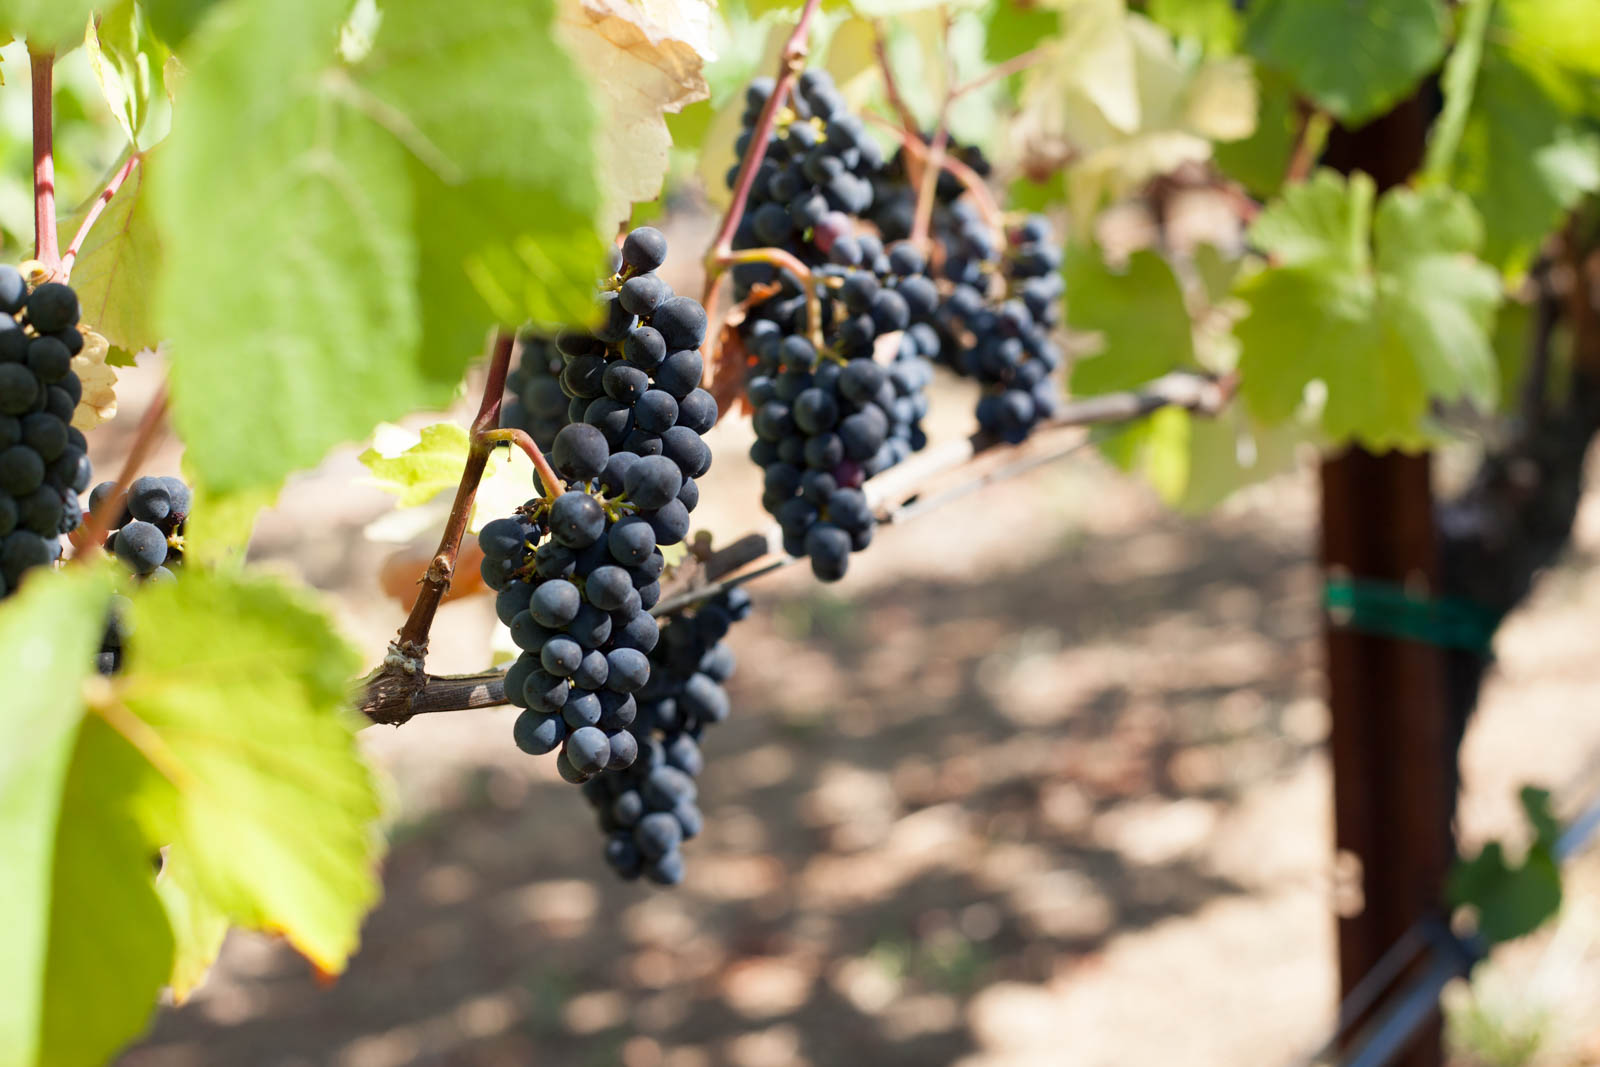 Pinot Noir grapes at Arista Winery, Russian River Valley, California. ©Kevin Day / Opening a Bottle